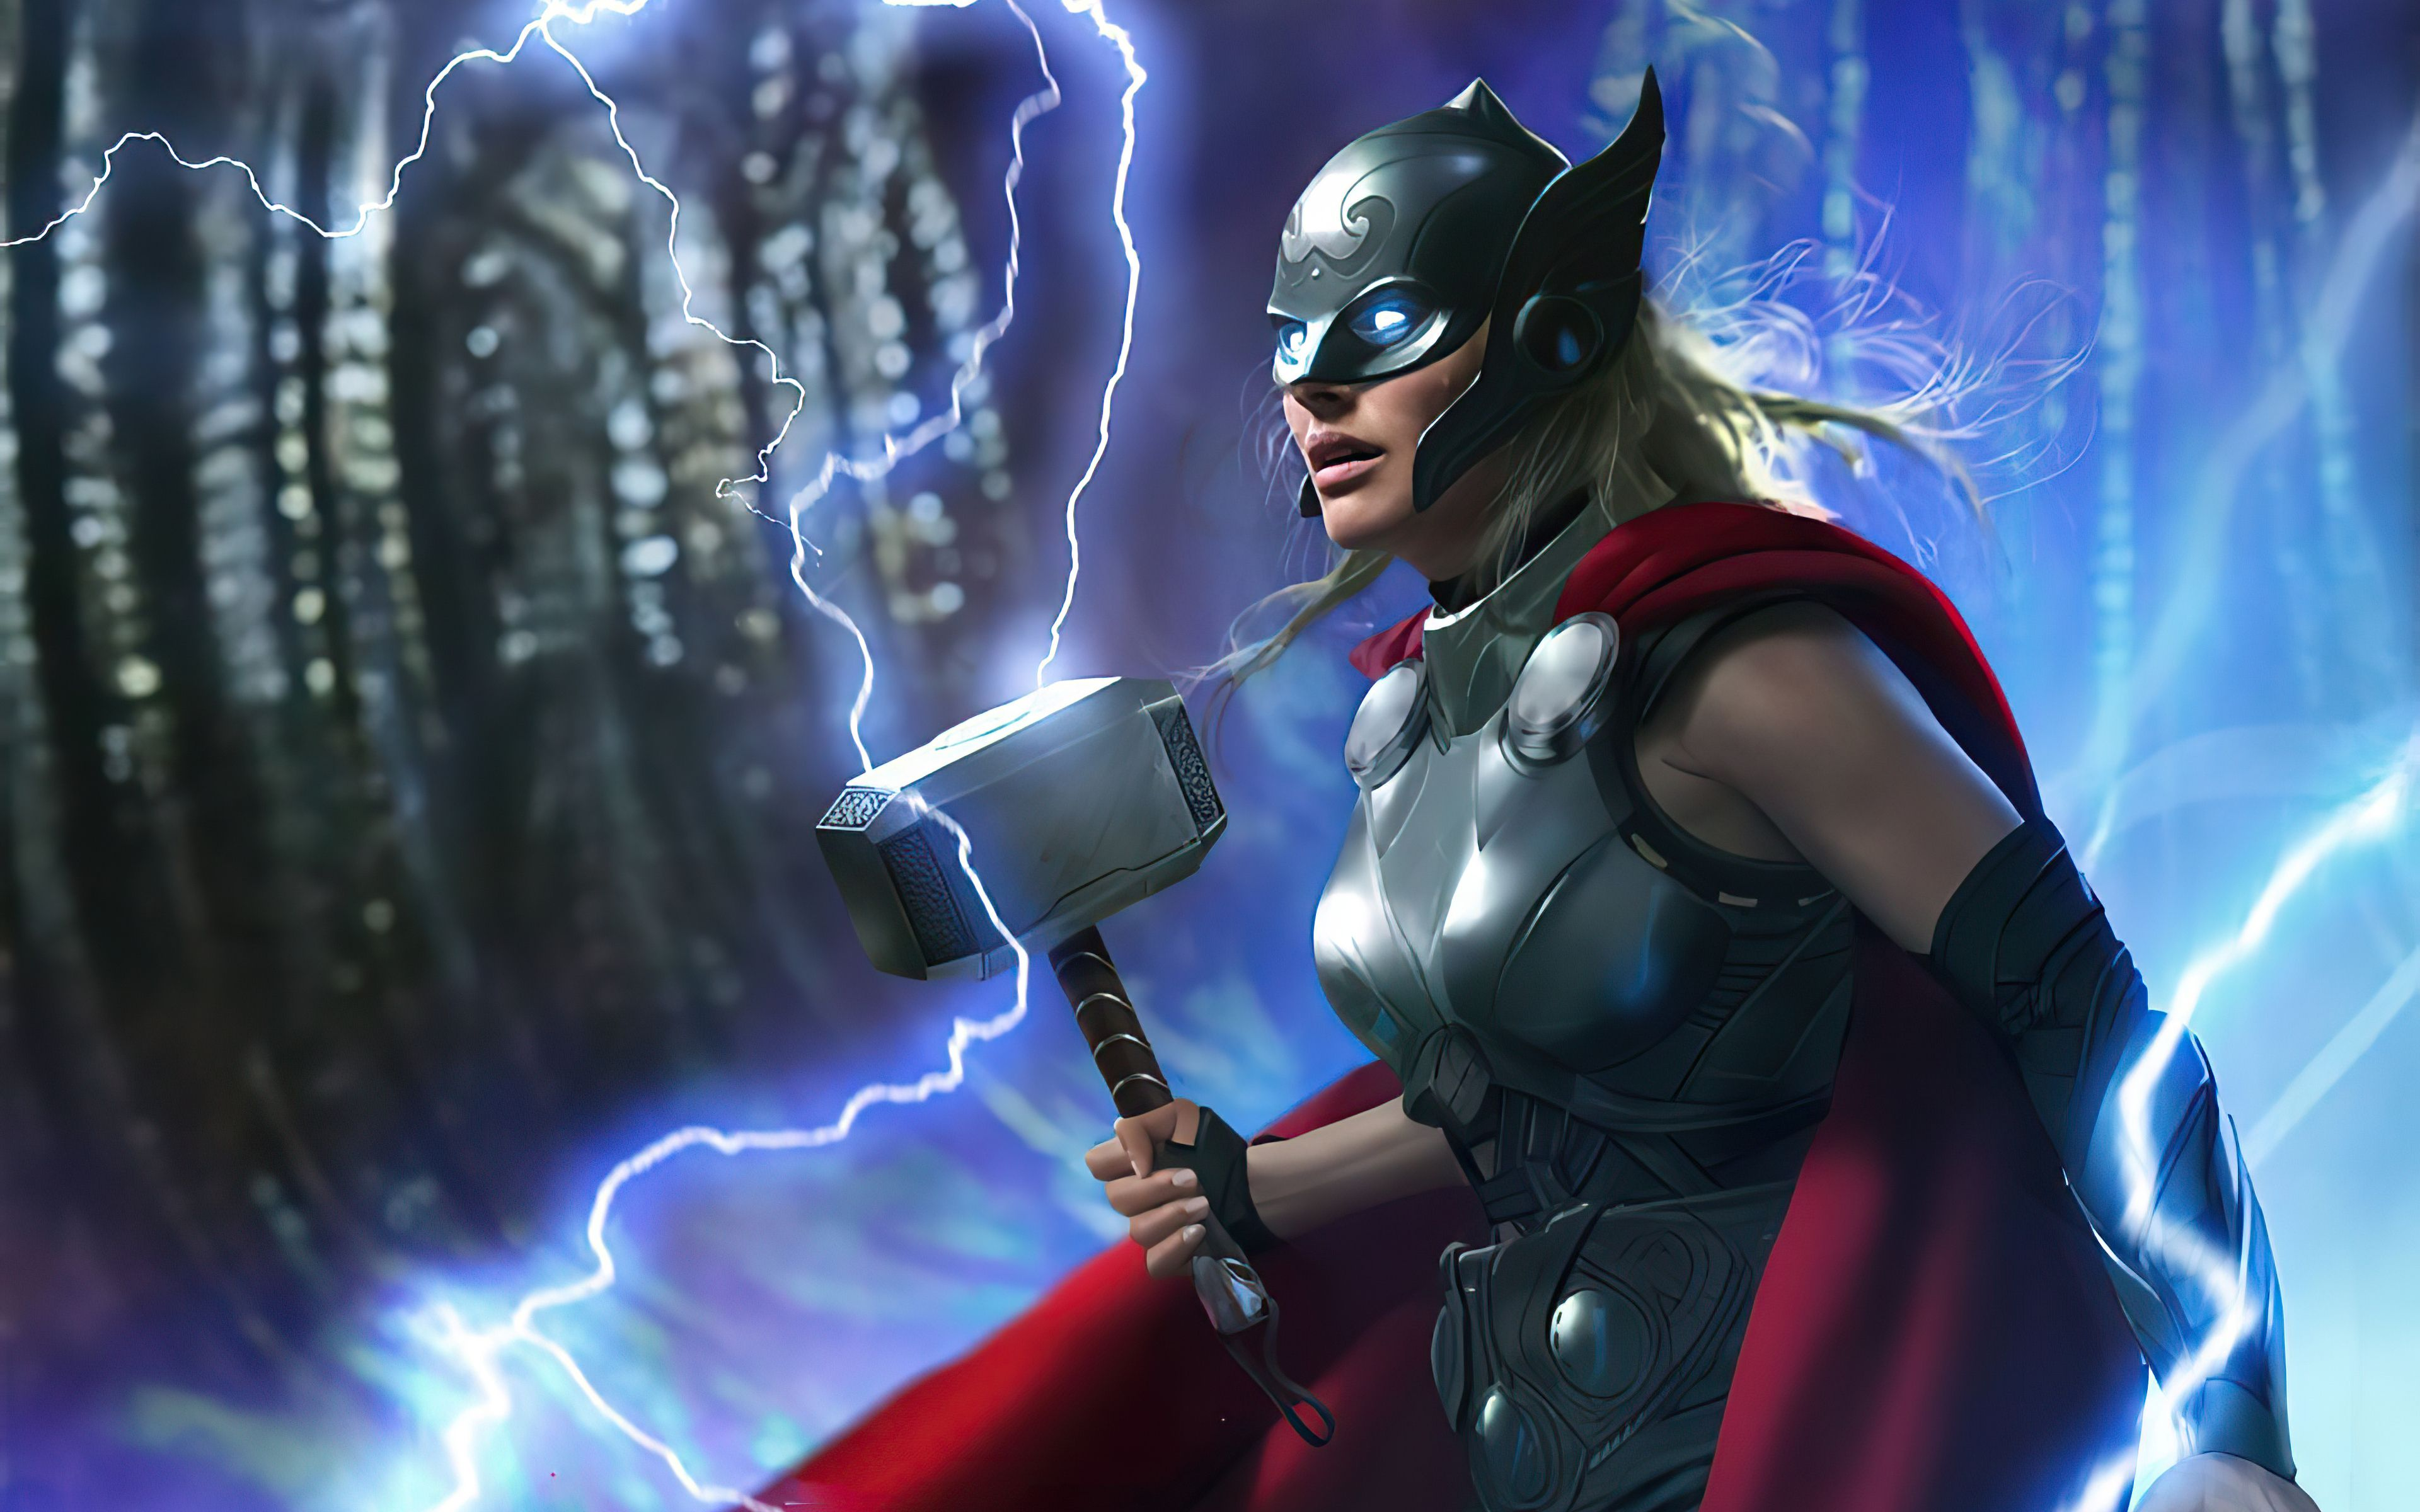 3840x2400 Jane Foster Thor 2021 4K 4k HD 4k Wallpapers, Image, Backgrounds, Photos and Pictures